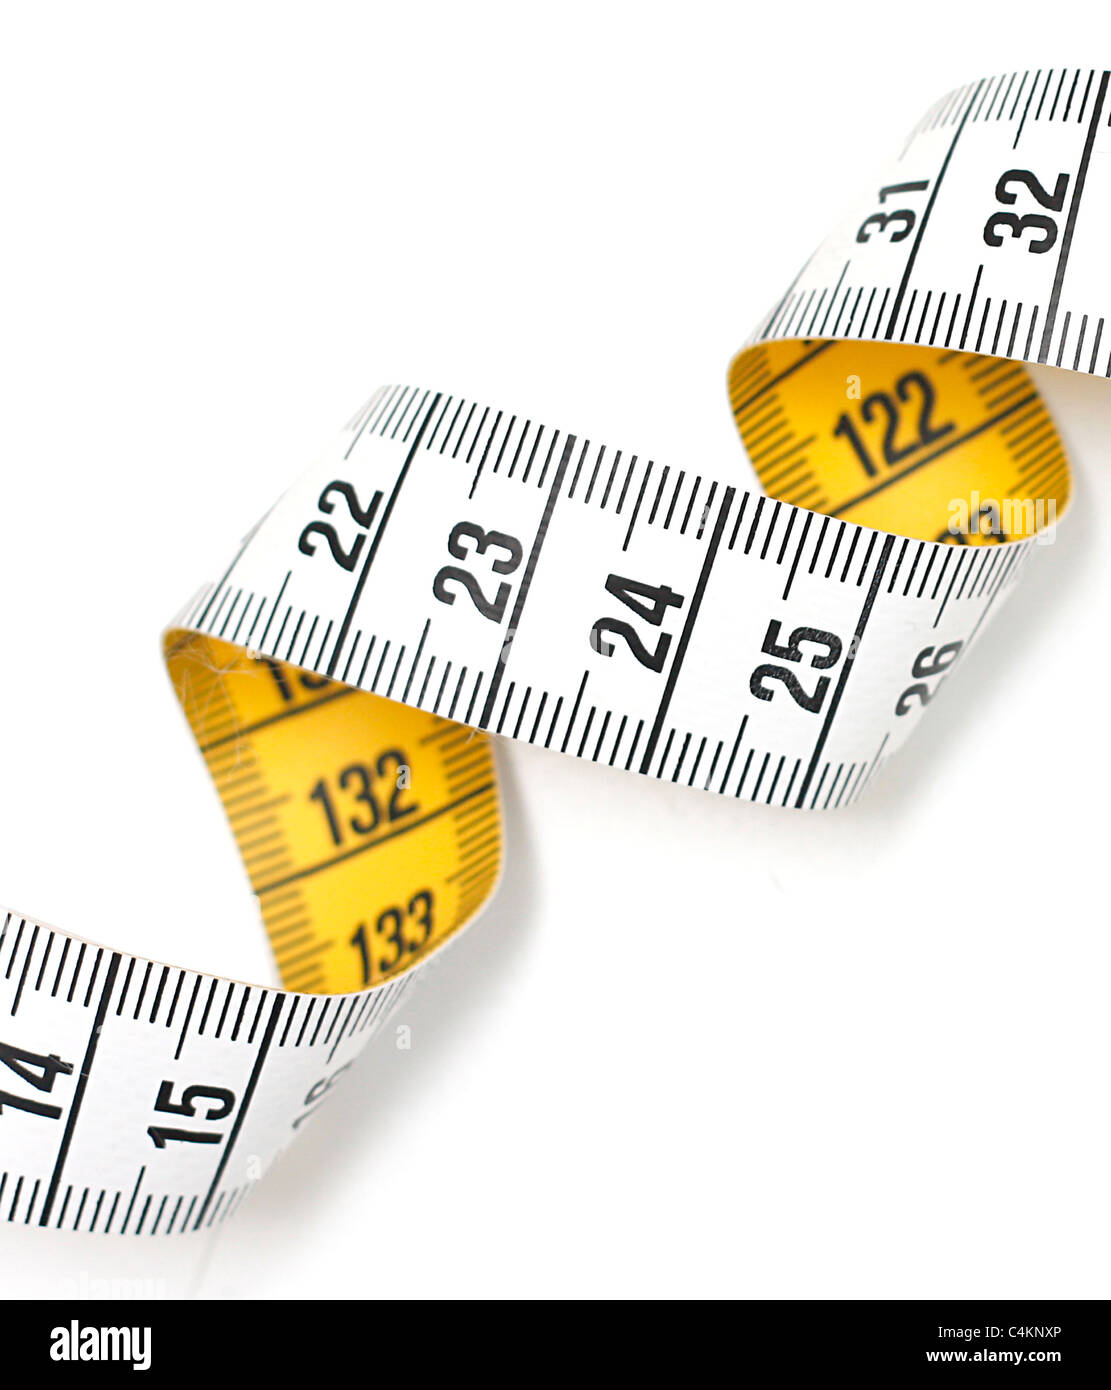 Tape measure isolated on white - Stock Image